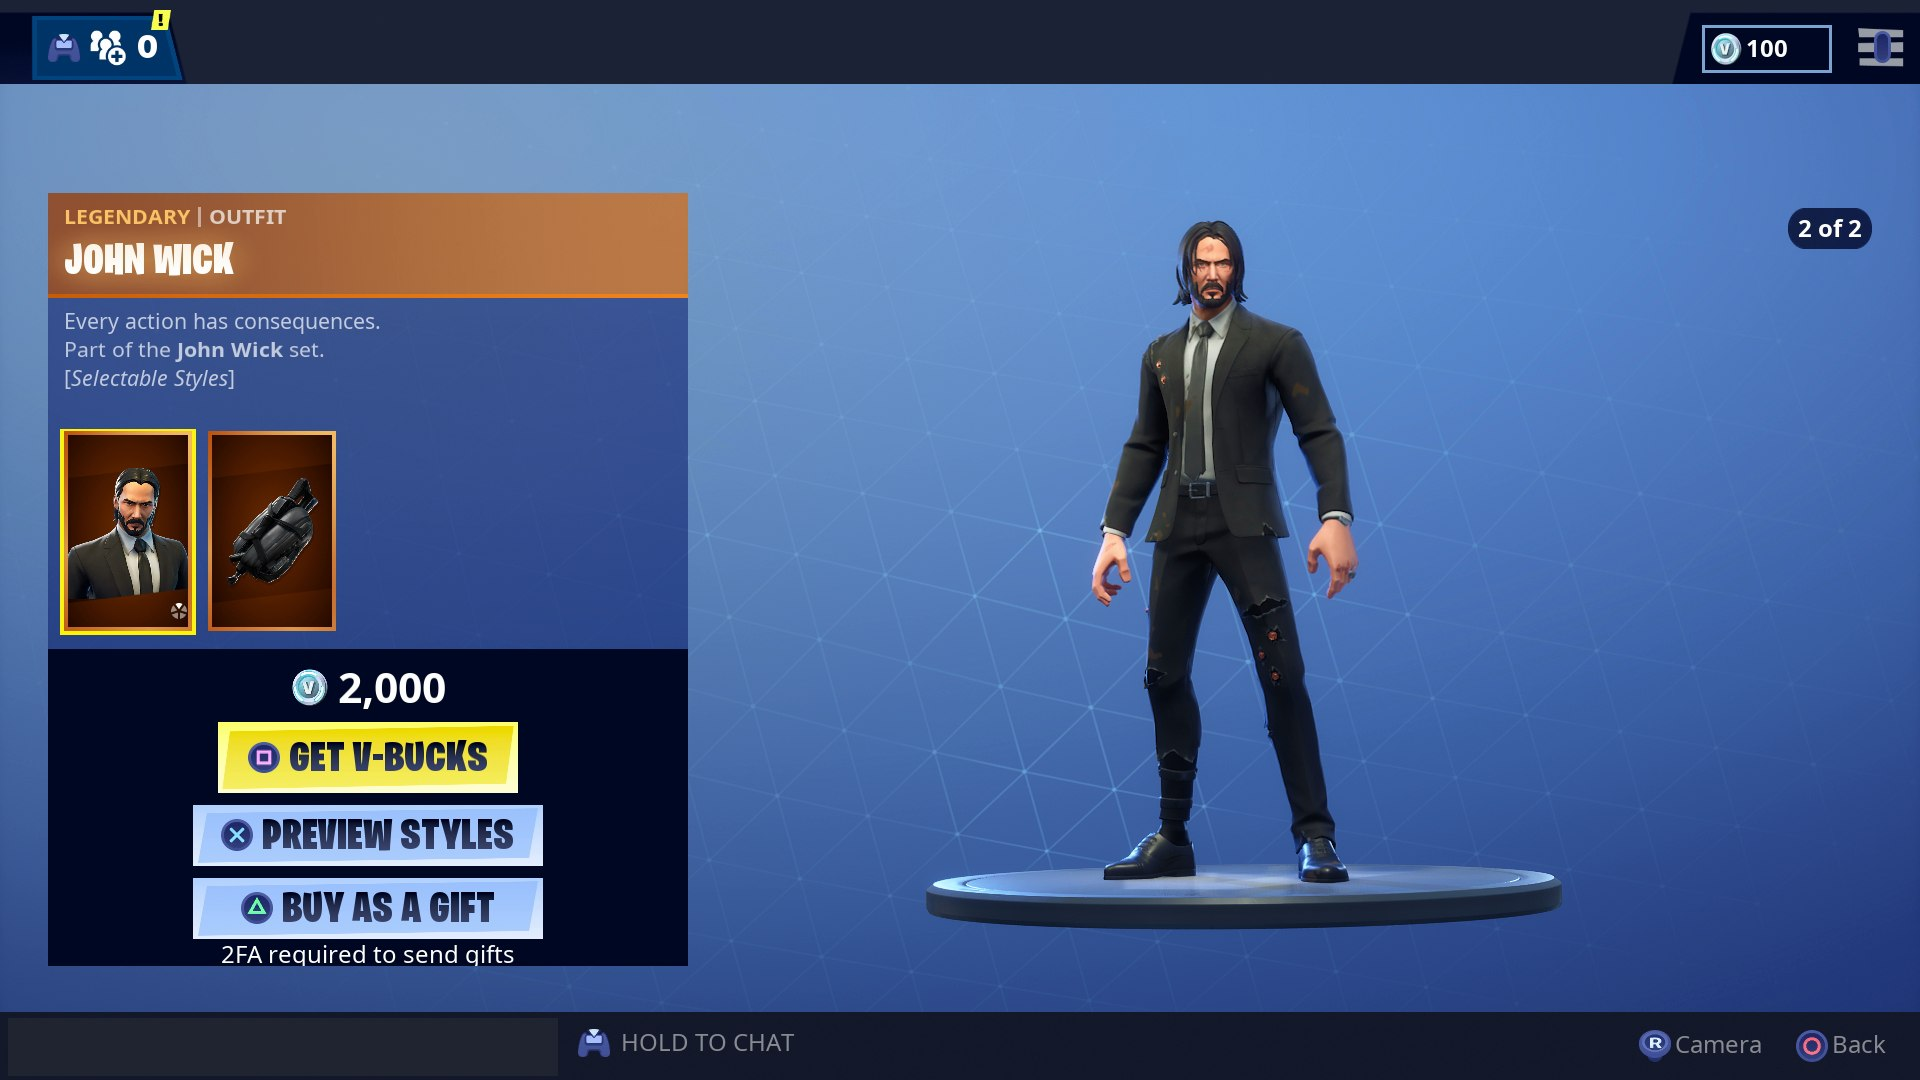 John Wick Fortnite Event Wick S Bounty Challenges John Wick Skin And Back Bling Usgamer For one, john wick is now a playable character in fortnite, so that's pretty cool. john wick fortnite event wick s